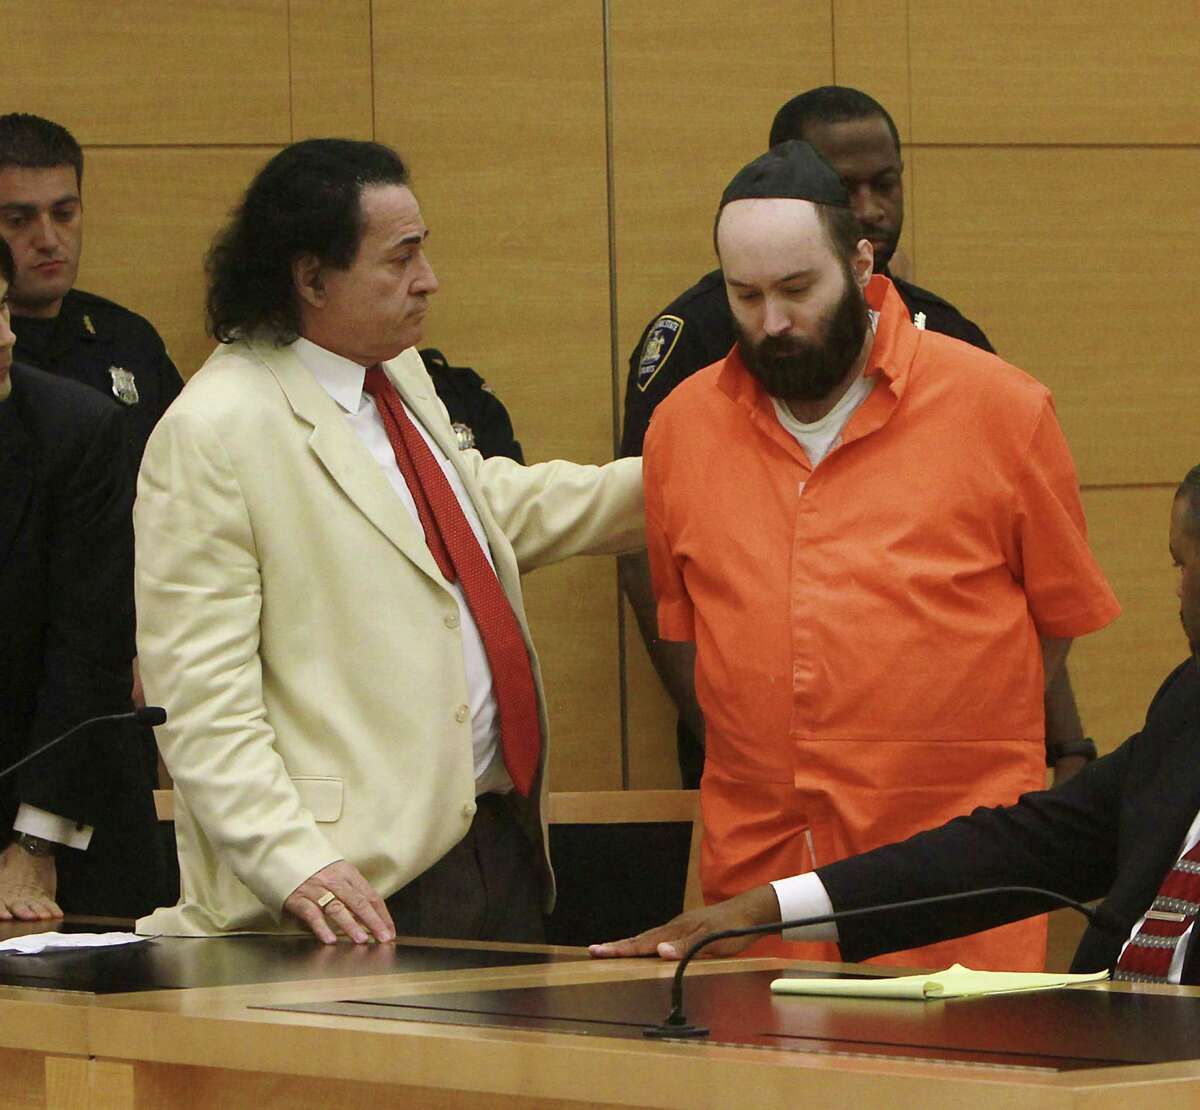 Defense attorney Howard Greenberg, left, comforts his client, Levi Aron, right, before Aron was escorted from the courtroom after sentencing at State Supreme Court in the Brooklyn borough of New York, Wednesday, Aug. 29, 2012. Aron received 40 years to life in prison for the 2011 murder of eight-year-old Leiby Kletzky, who he abducted after the child stopped to ask him for directions while walking home from religious day camp.